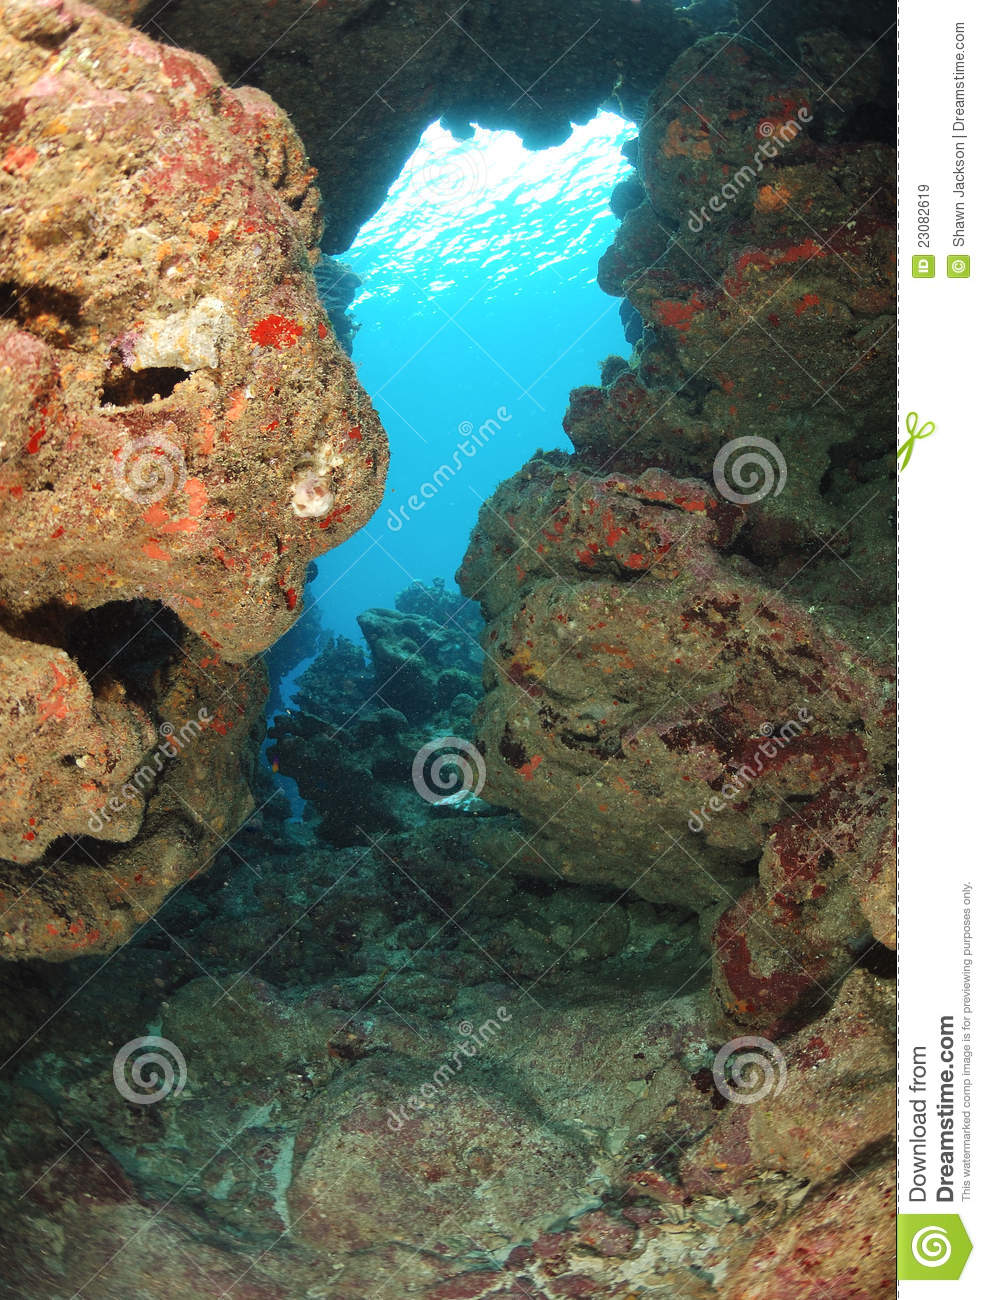 Underwater Canyon Royalty Free Stock Images - Image: 23082619